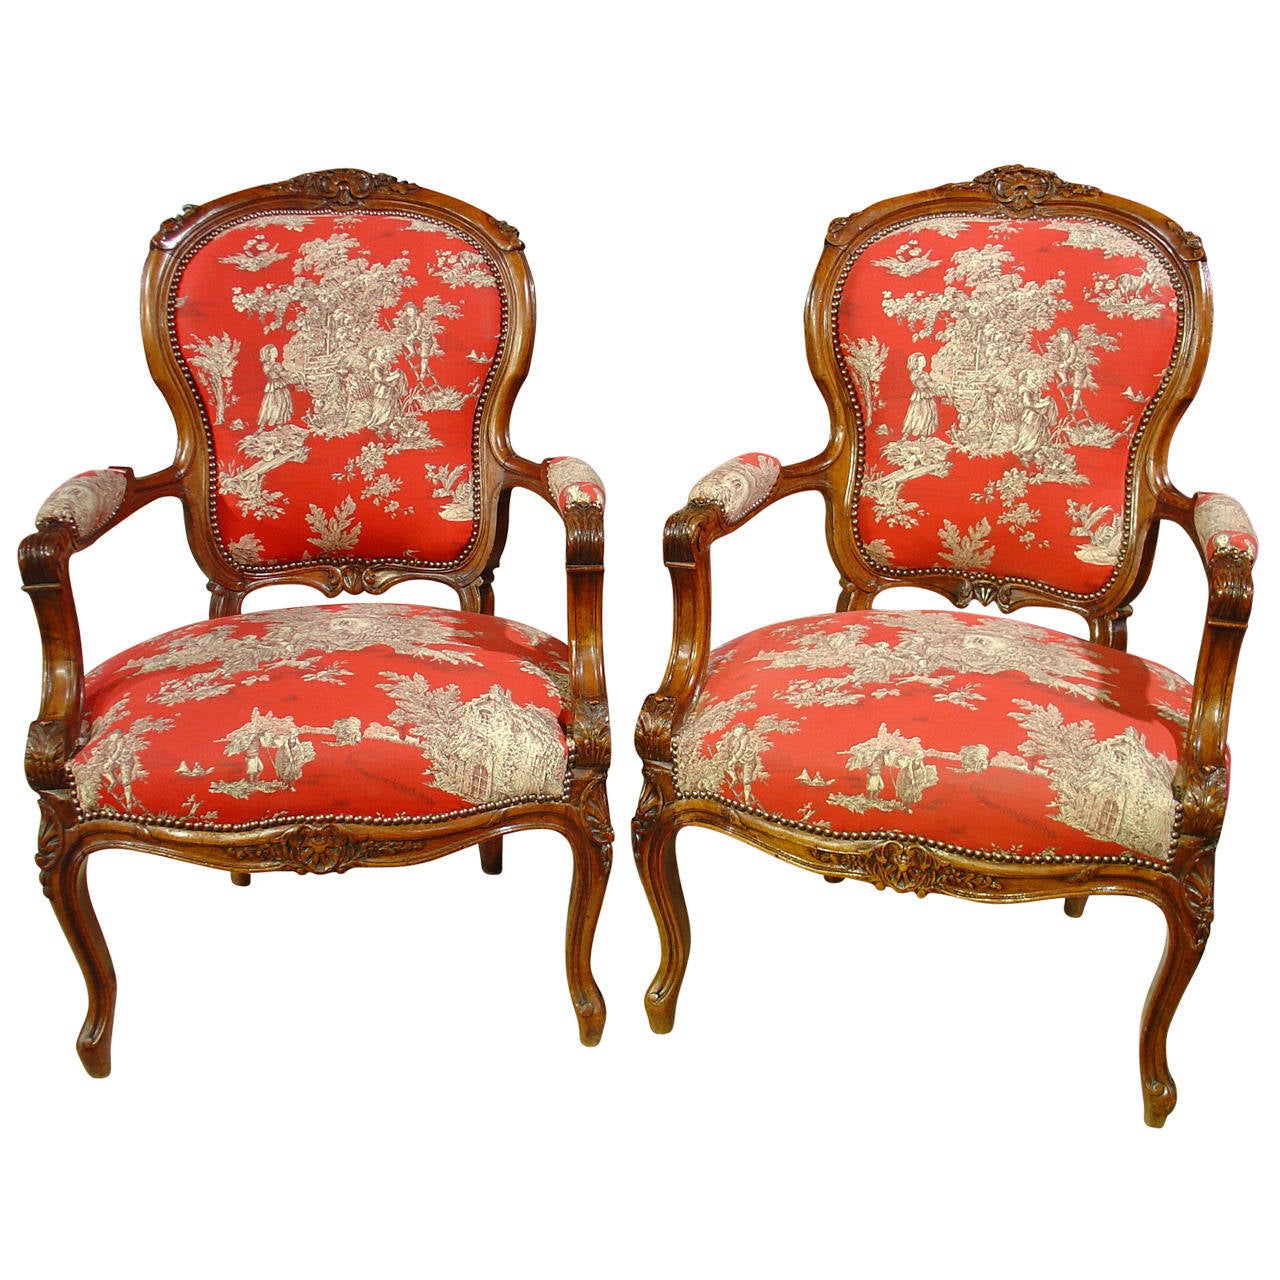 Fauteuils Toile Pair Of Louis Xv Style Walnut Fauteuils With Toile De Jouy Upholstery